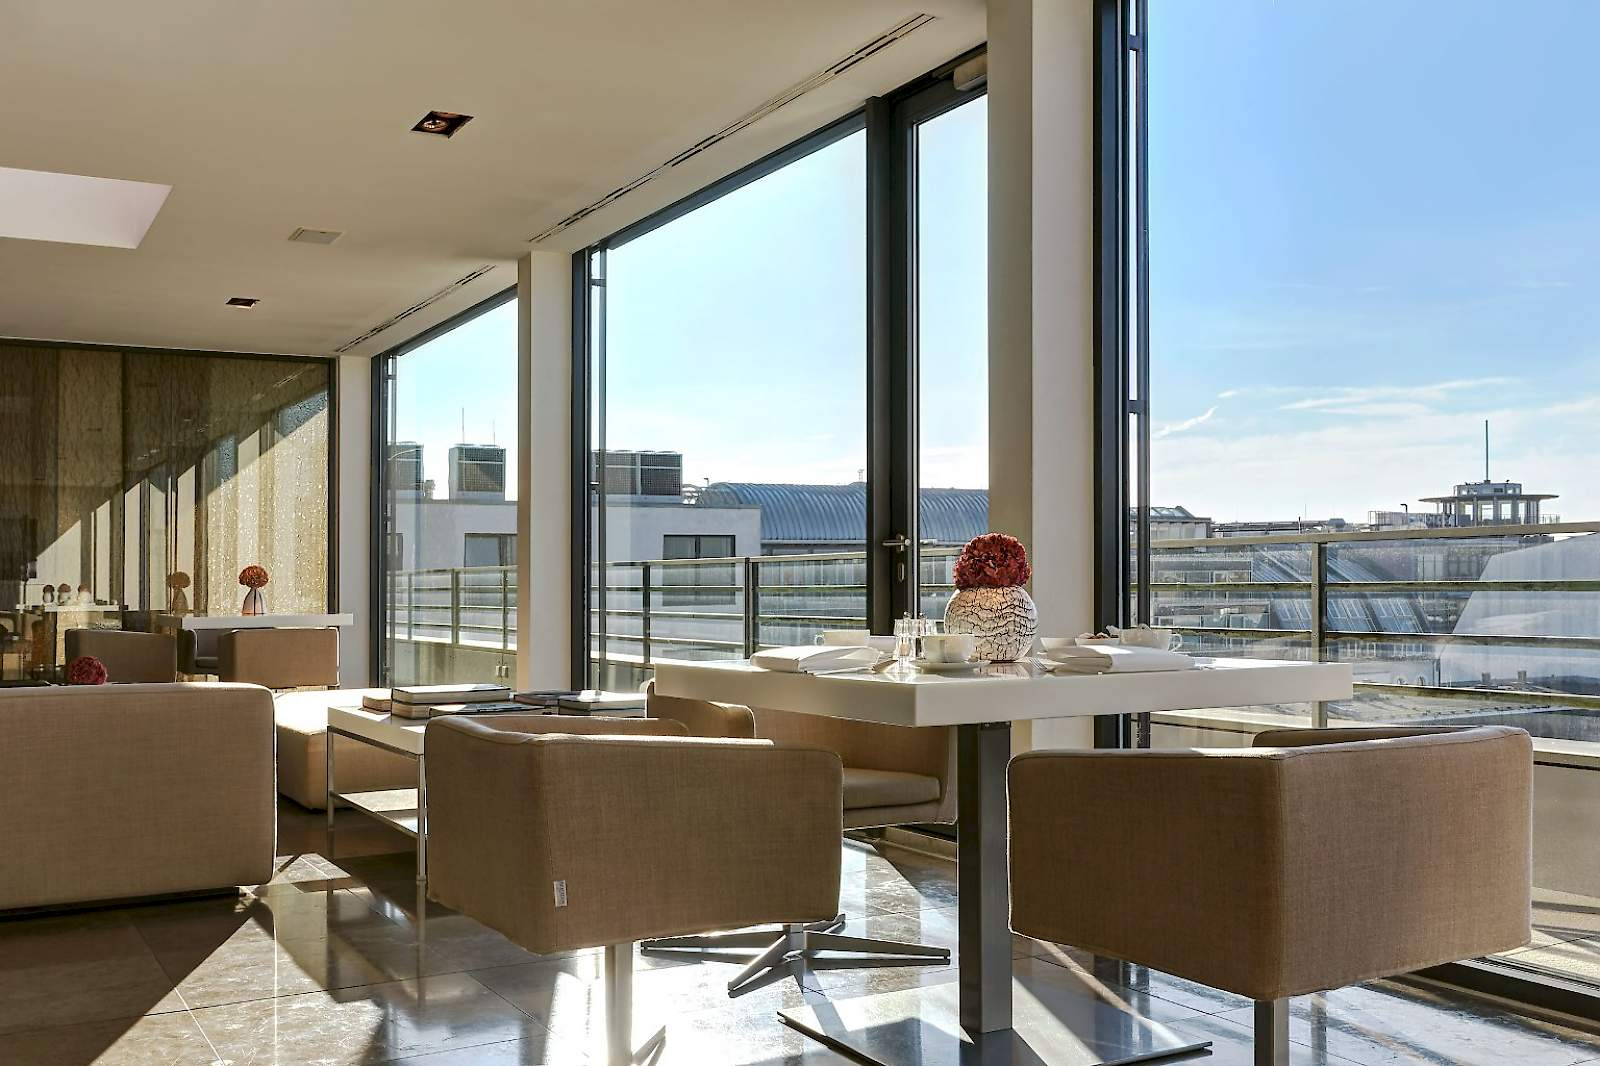 Our breakfast room is a place for passionate breakfast gourmets above the rooftops of Berlin